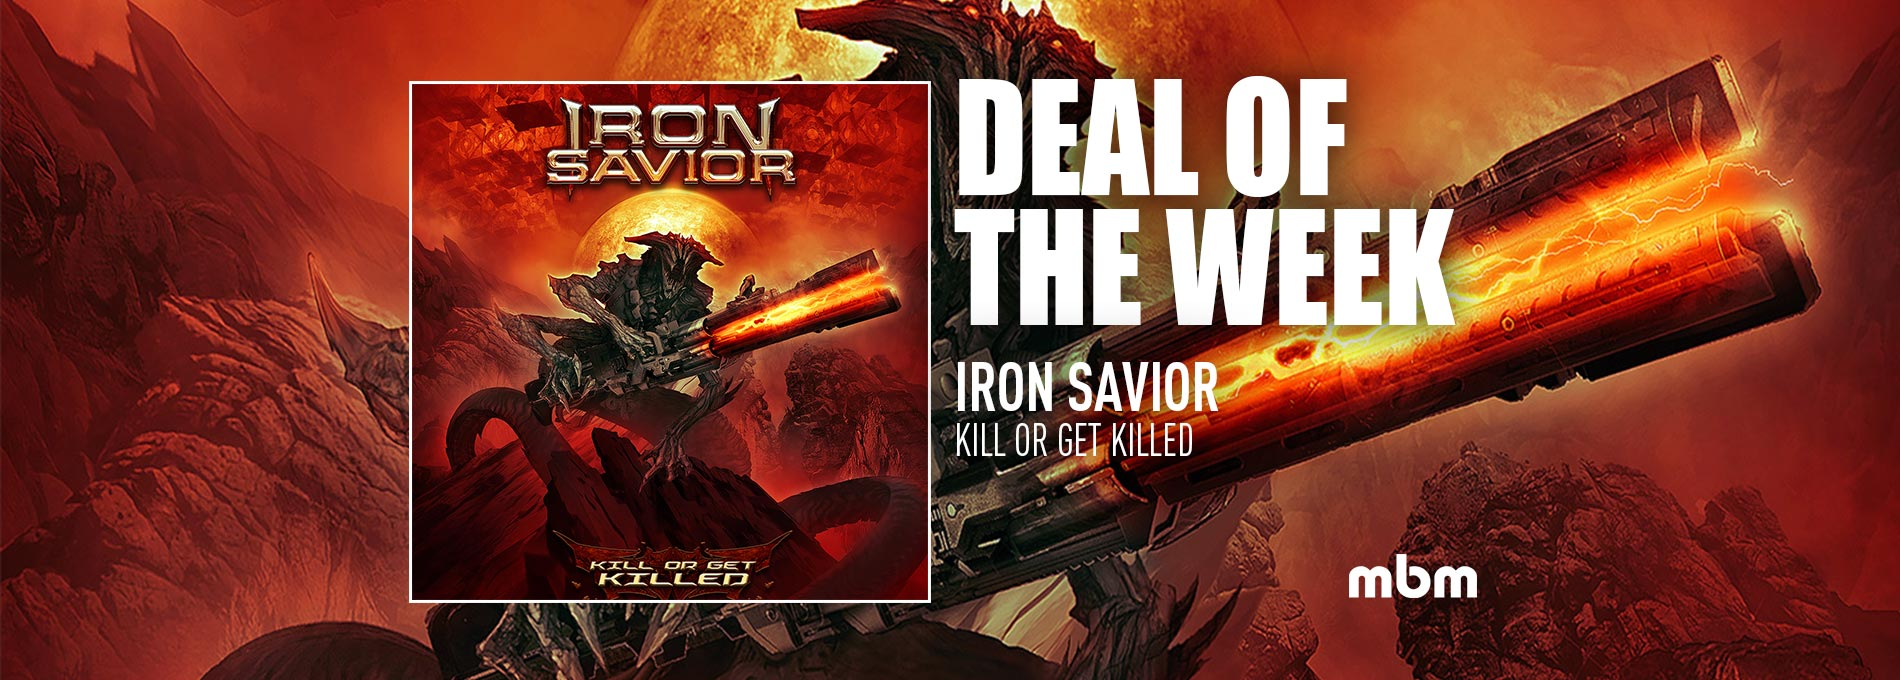 Deal Of The Week: IRON SAVIOR - Kill Or Get Killed